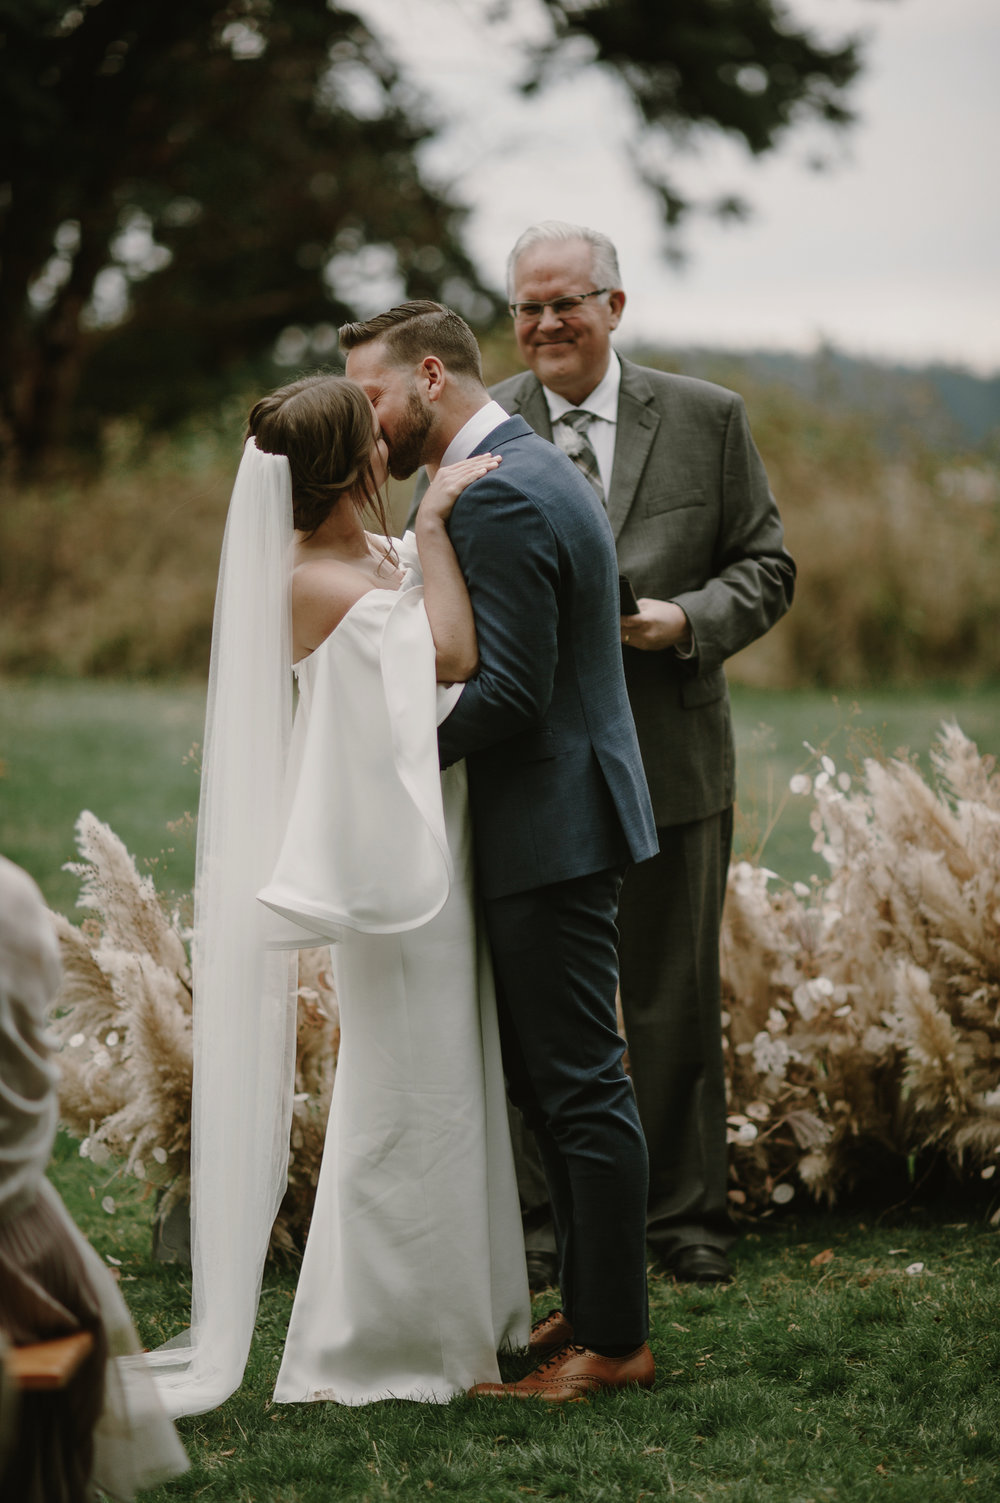 Kristen_Marie_Parker_Woodstock_Farm_Wedding057.JPG